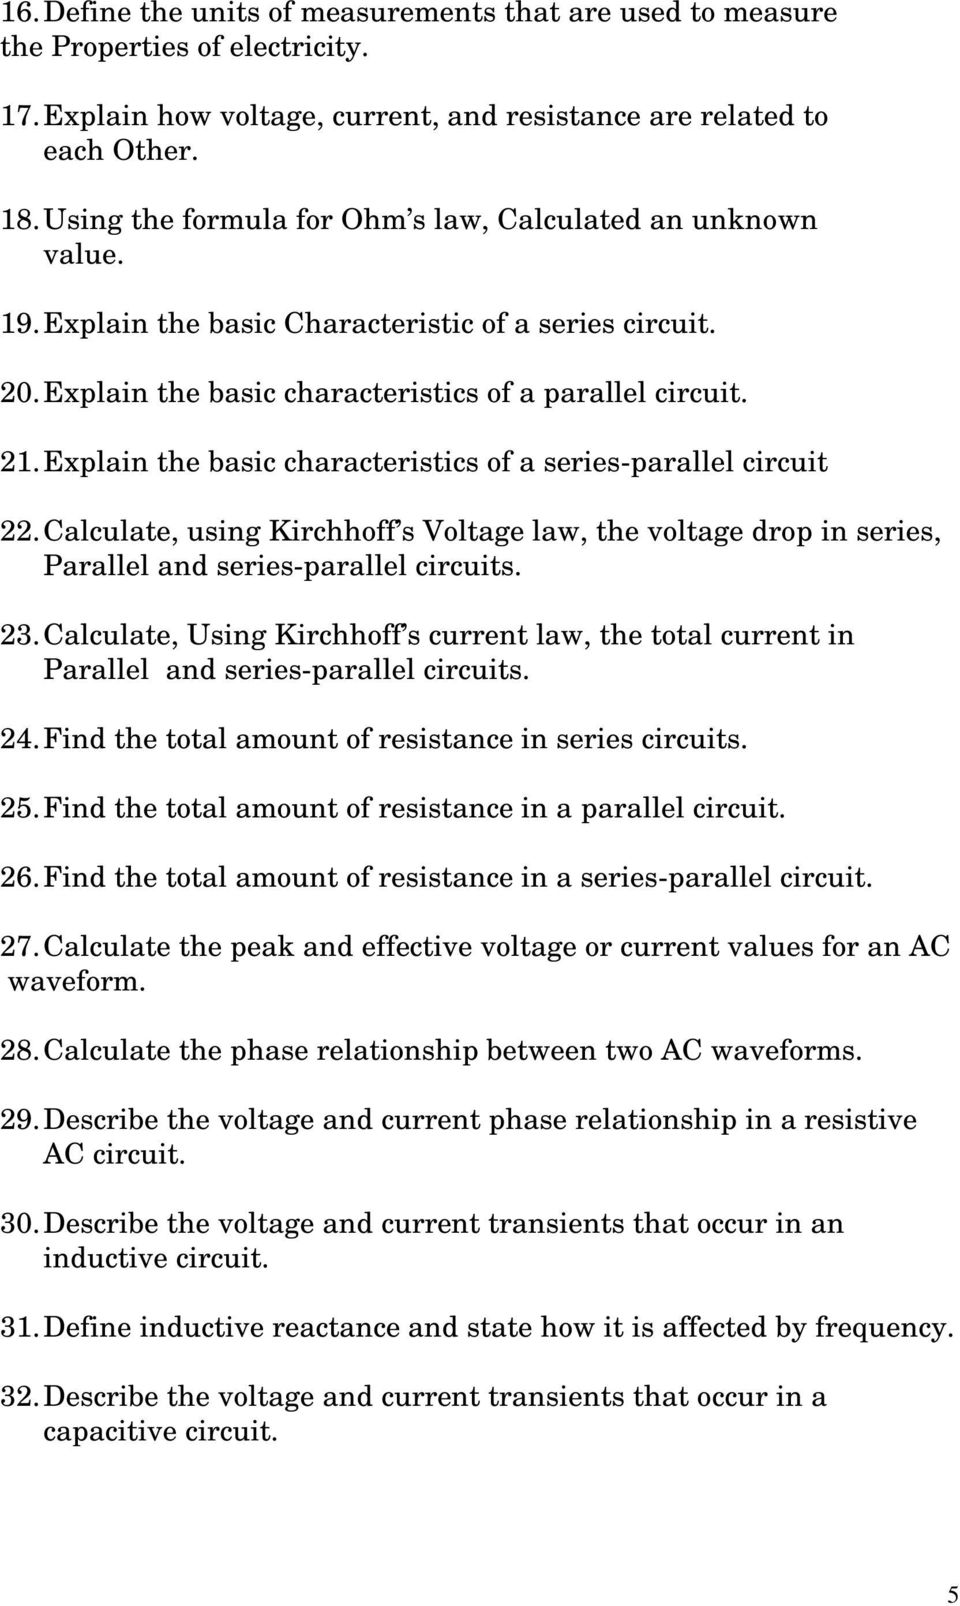 Elpt 1419 Fundamentals Of Electricity I Pdf Voltage In Series And Parallel Circuits Explain The Basic Characteristics A Circuit 22 Calculate Using Kirchhoff